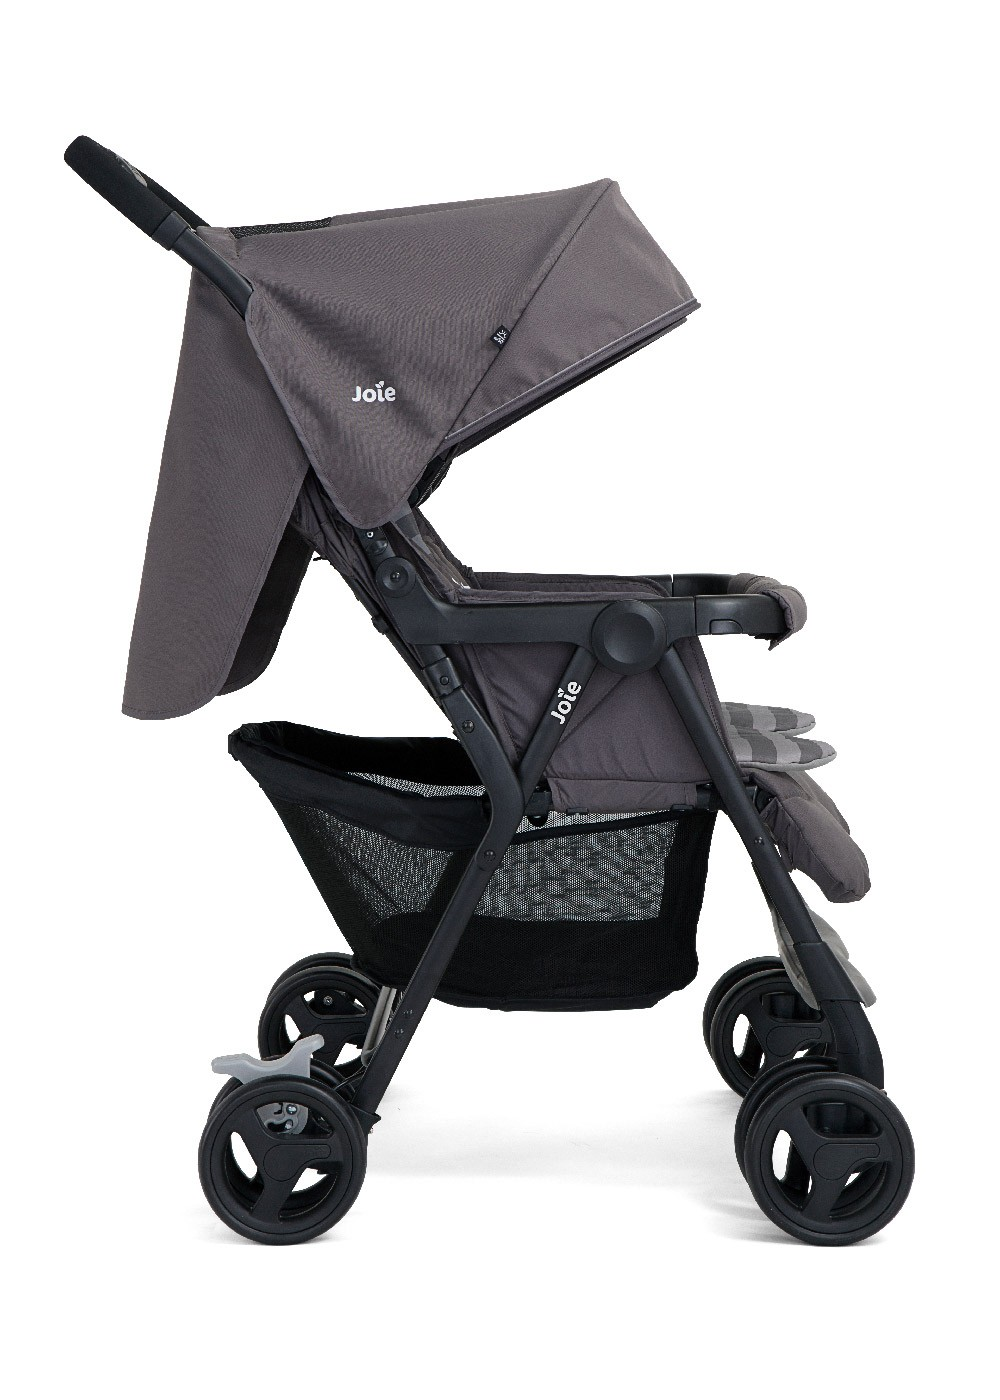 Combi Double Stroller Side By Side Joie Aire Twin Double Baby Stroller Side By Side Newborn